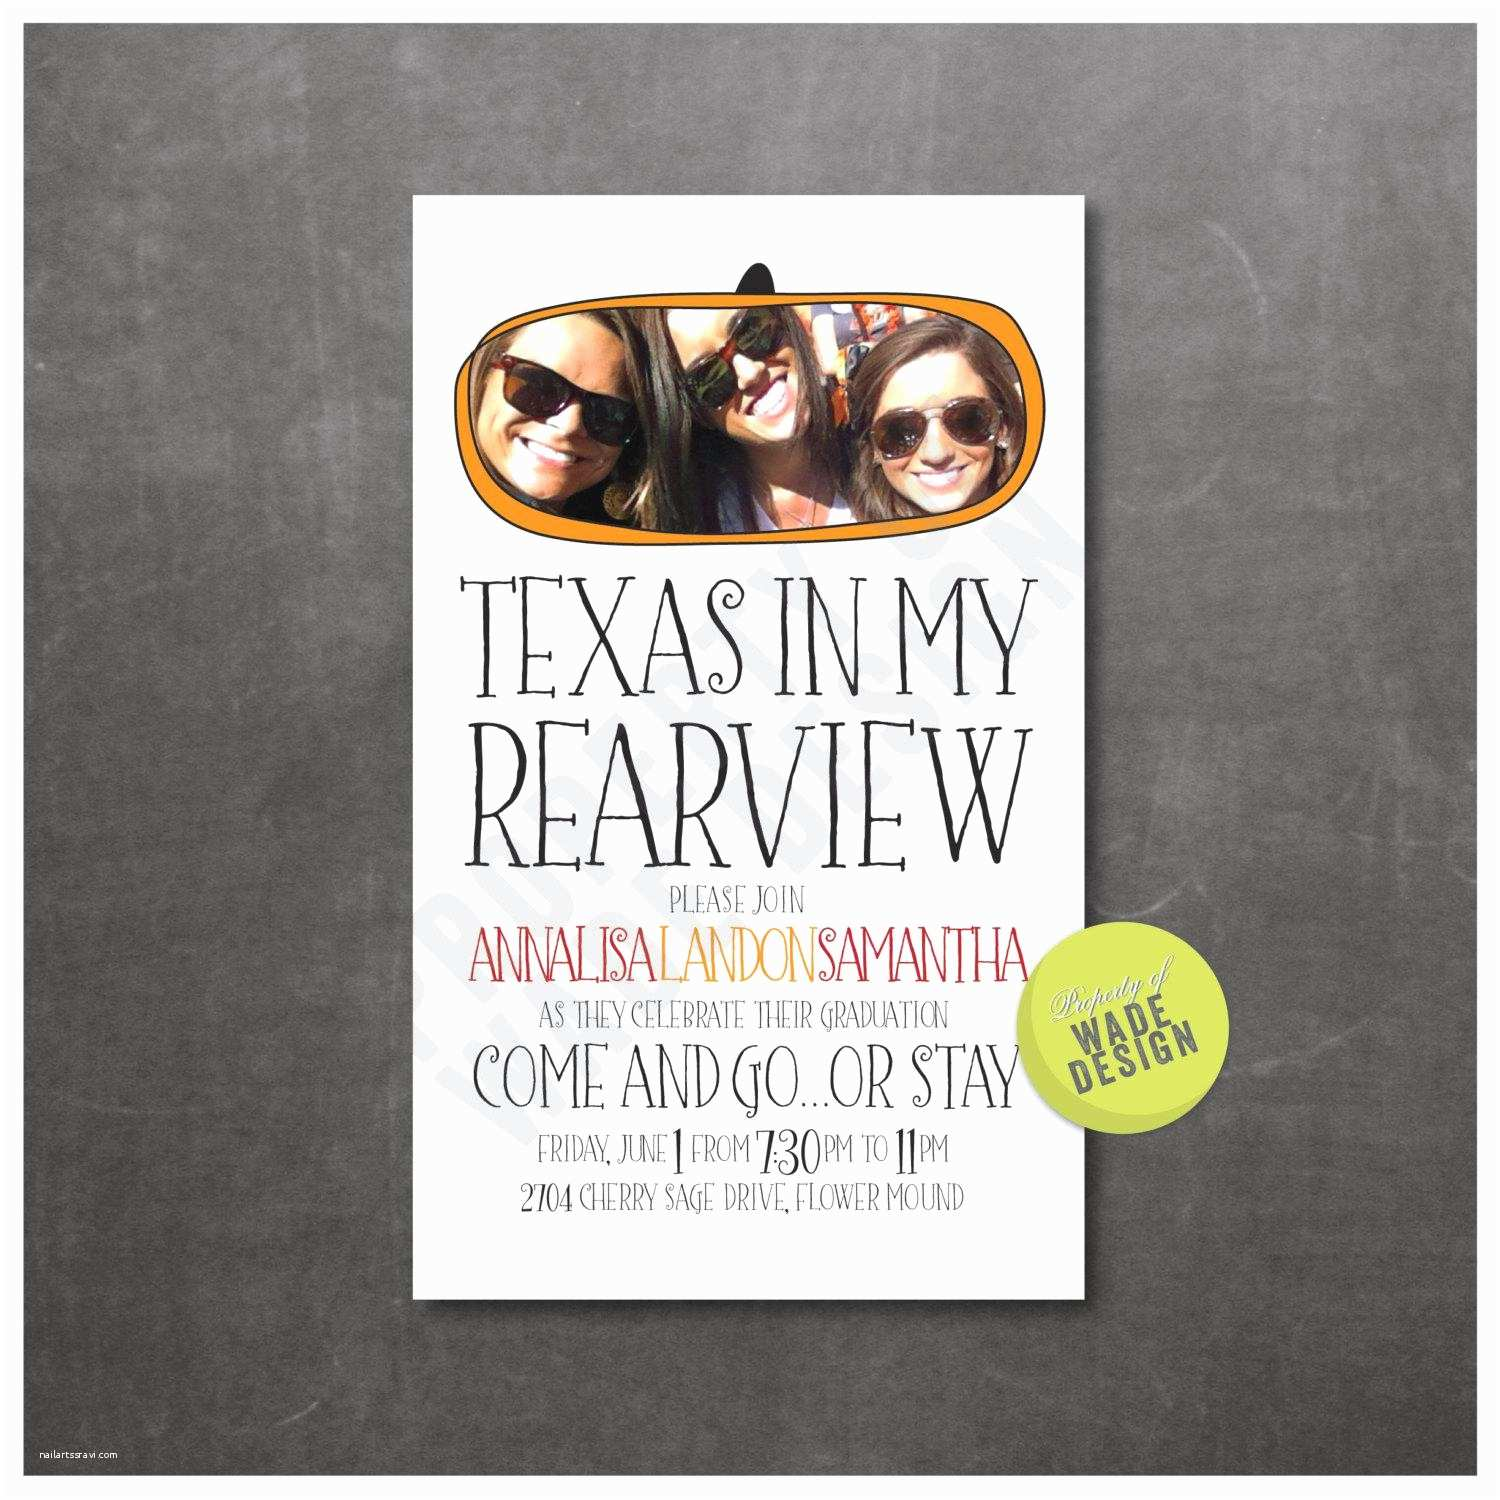 Farewell Party Invitation Wording Going Away Party Invitations